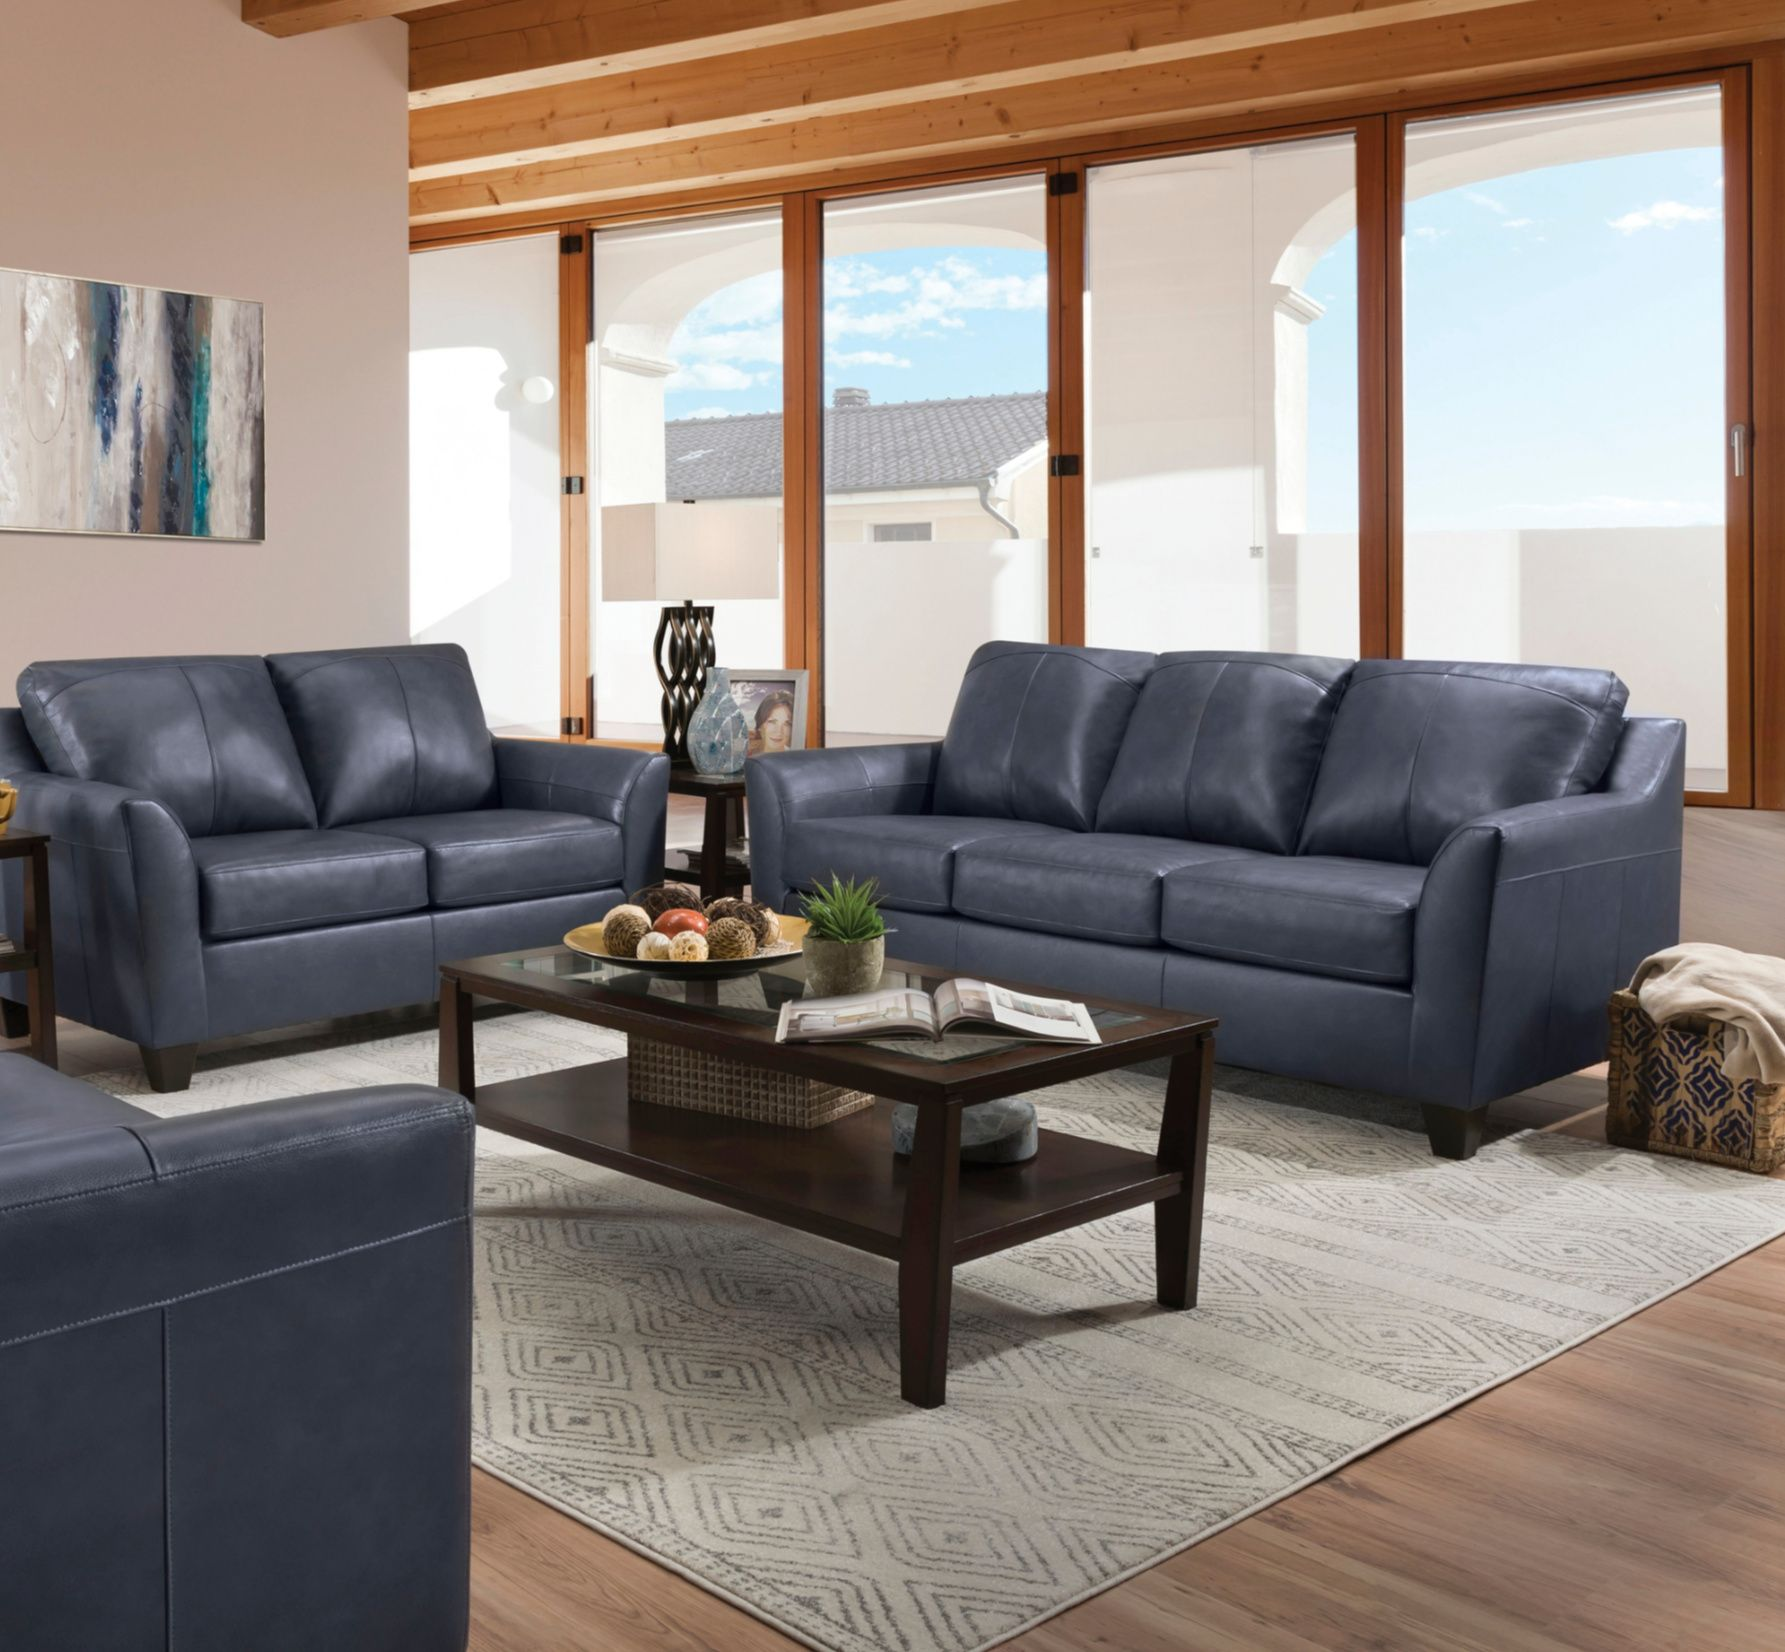 Amazing Deco Shale Leather Sofa In 2019 Living Room Sets Leather Ibusinesslaw Wood Chair Design Ideas Ibusinesslaworg